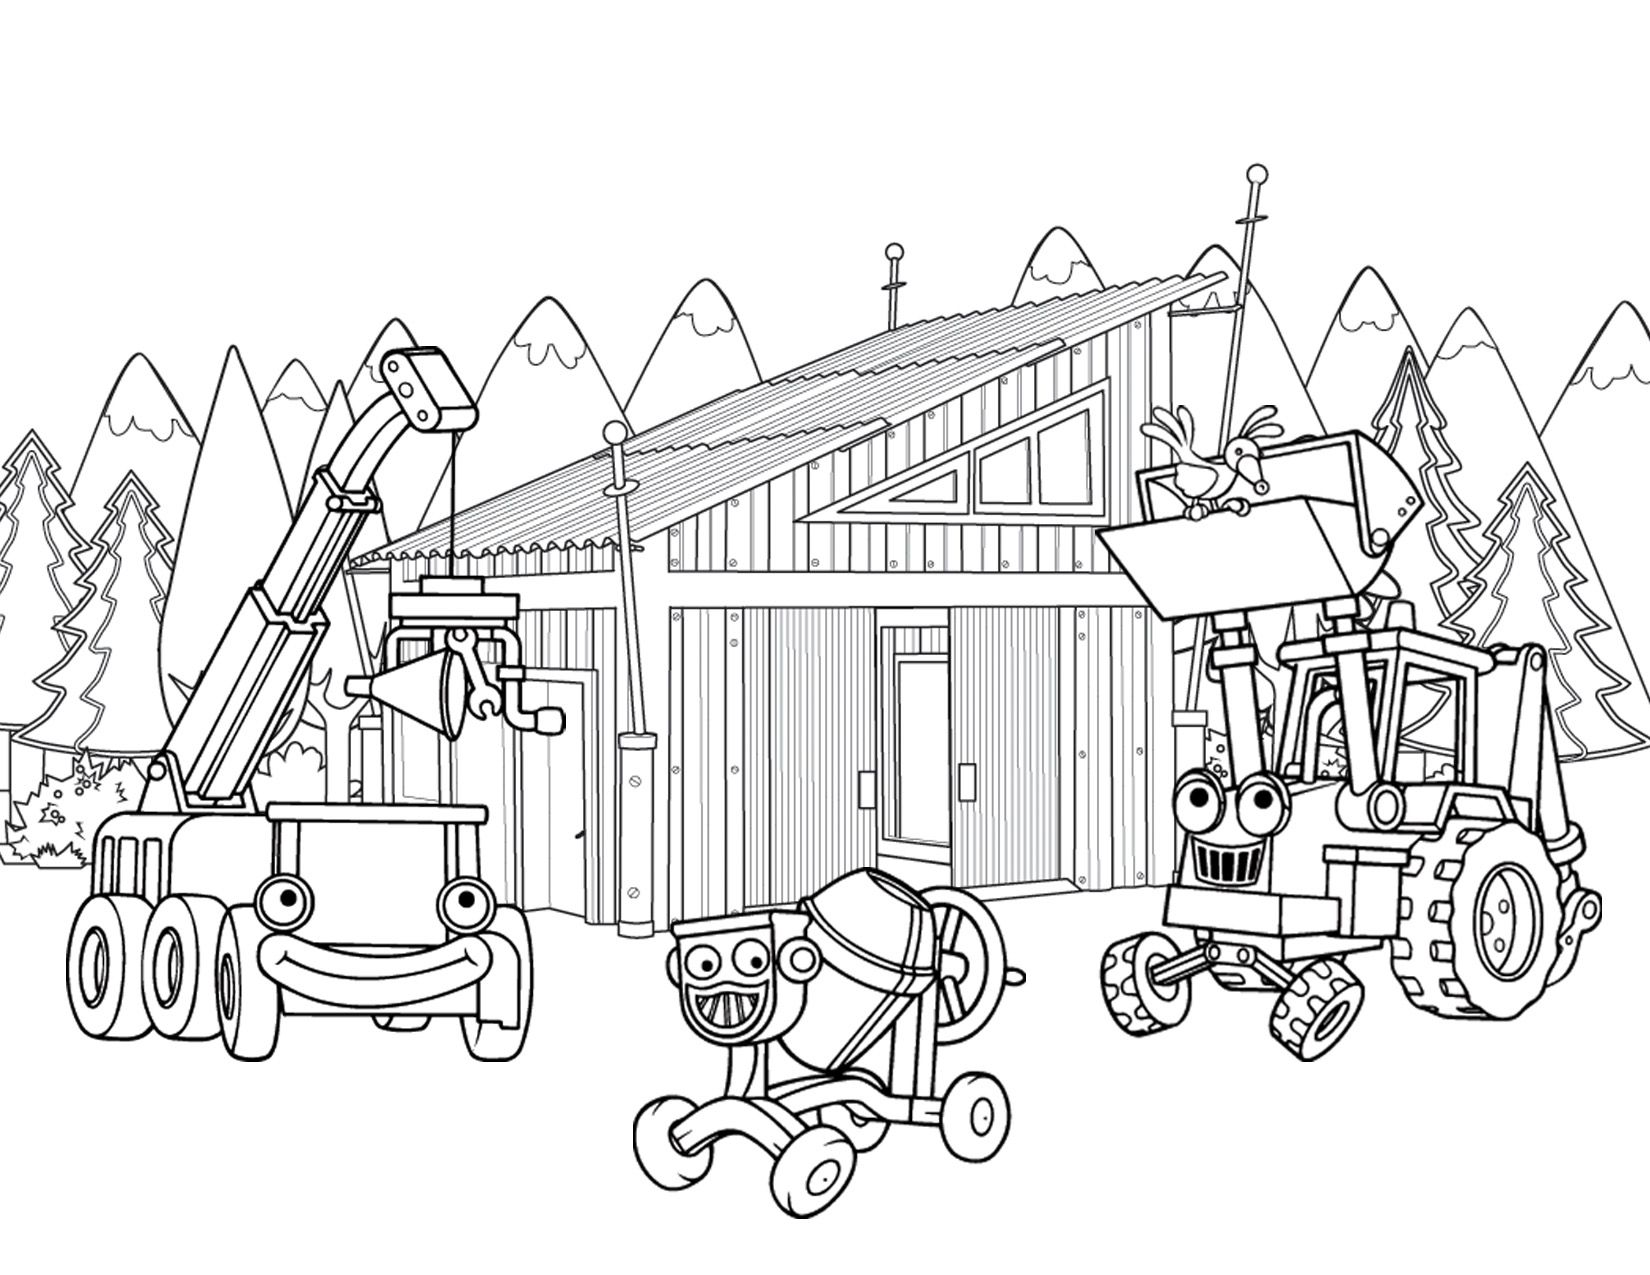 Construction Coloring Pages Building Sheet Ideas For The House